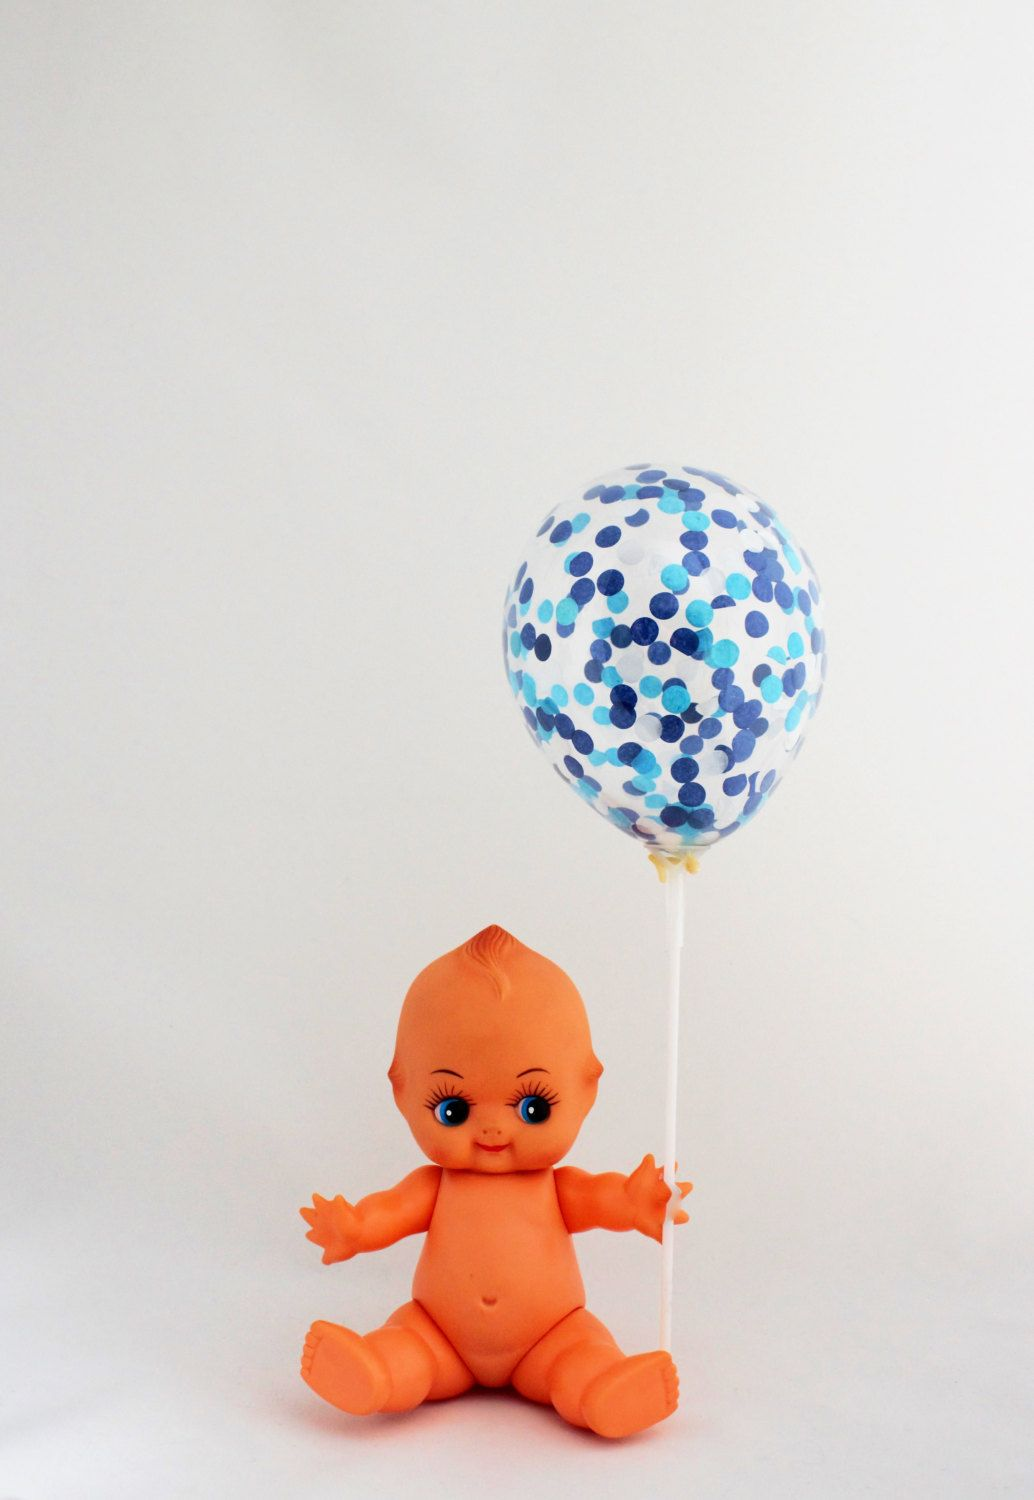 Blue Confetti Balloons (pack of 3) The Perfect Little Boy Baby Shower or Blue Theme Party Decoration! by ThisLittleParty on Etsy